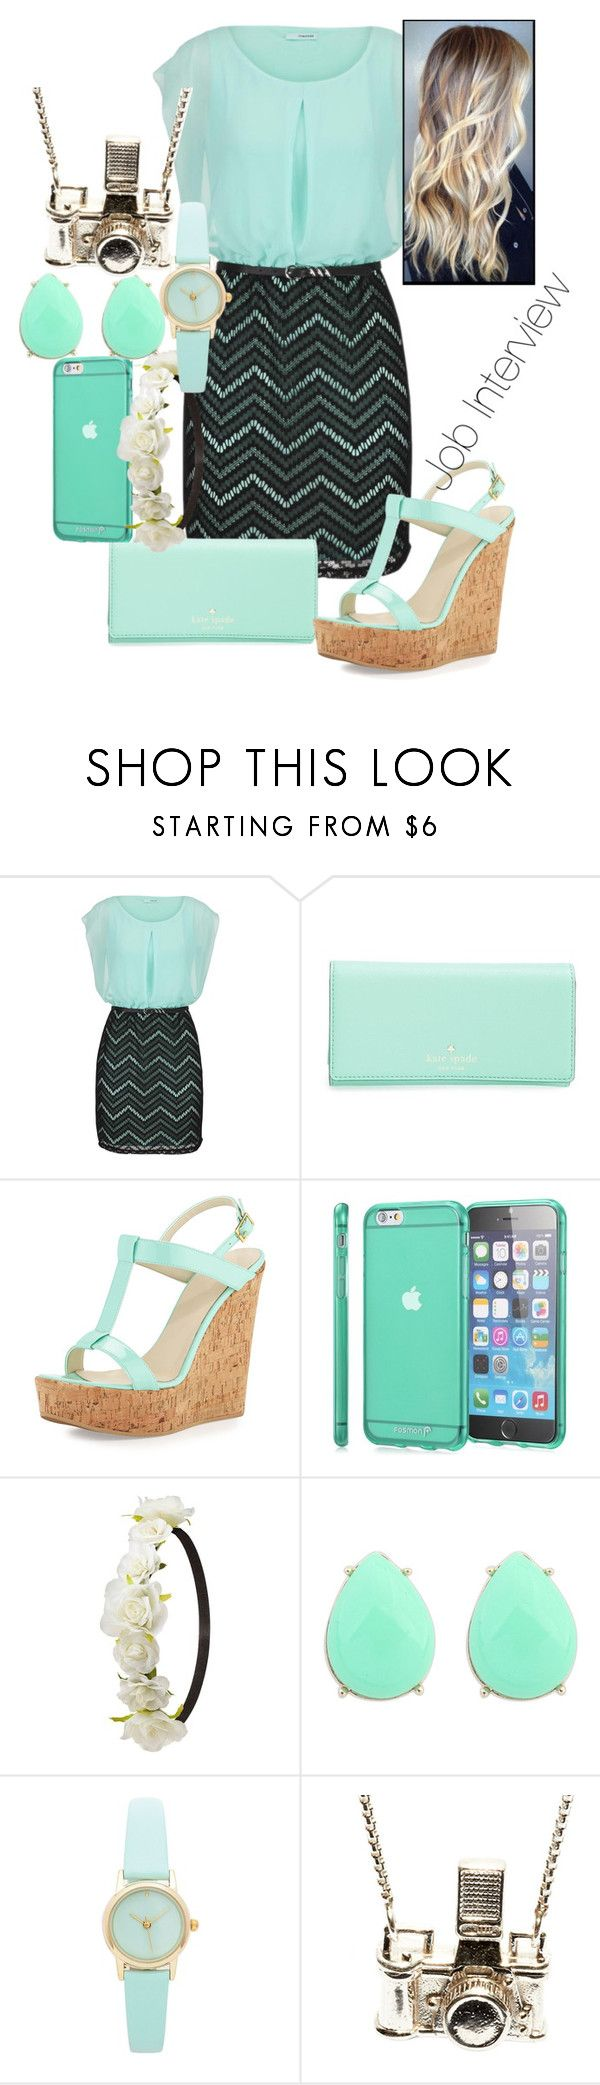 """""""Job Interview"""" by samirogers1104 ❤ liked on Polyvore featuring maurices, Kate Spade, Dee Keller, Charlotte Russe and Kiel Mead Studio"""